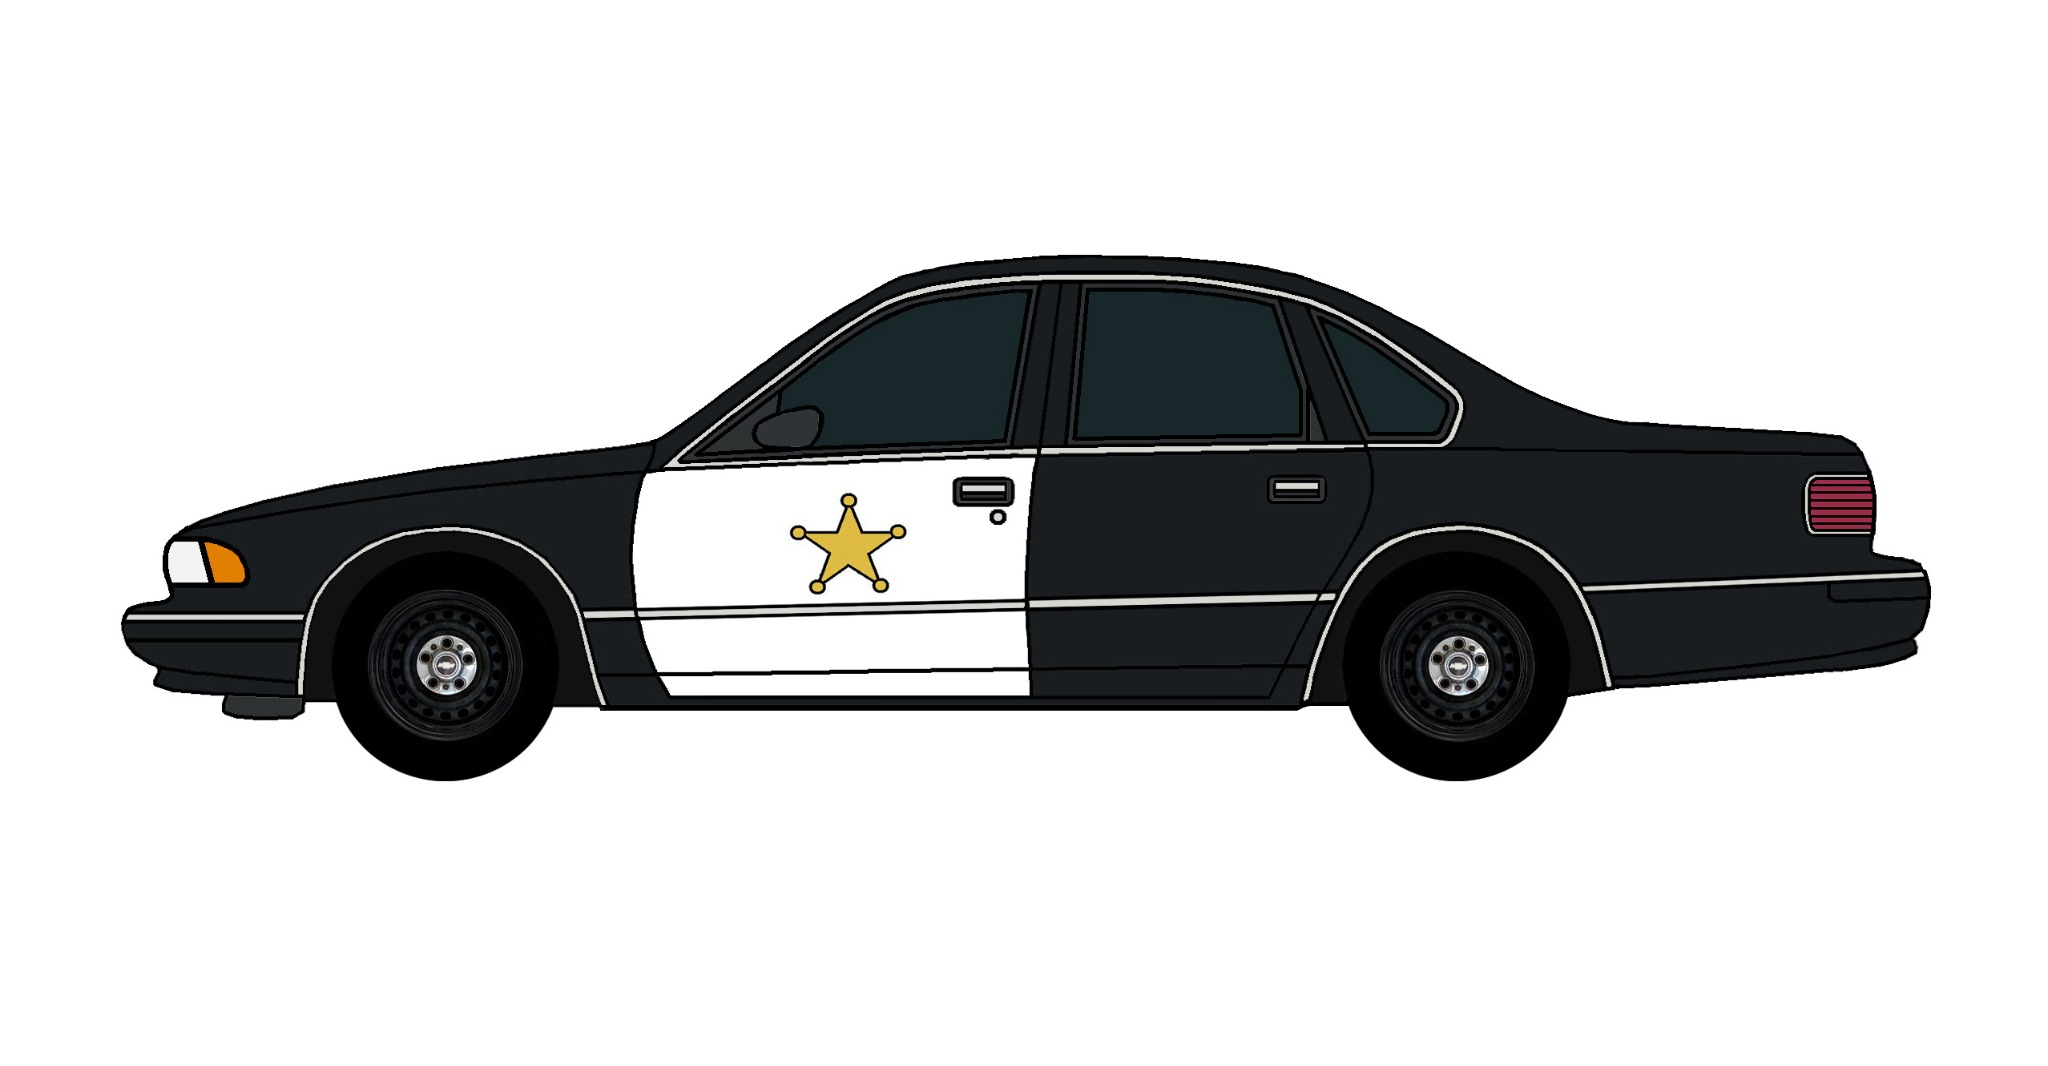 1995 Chevy Caprice Police Car BLACK